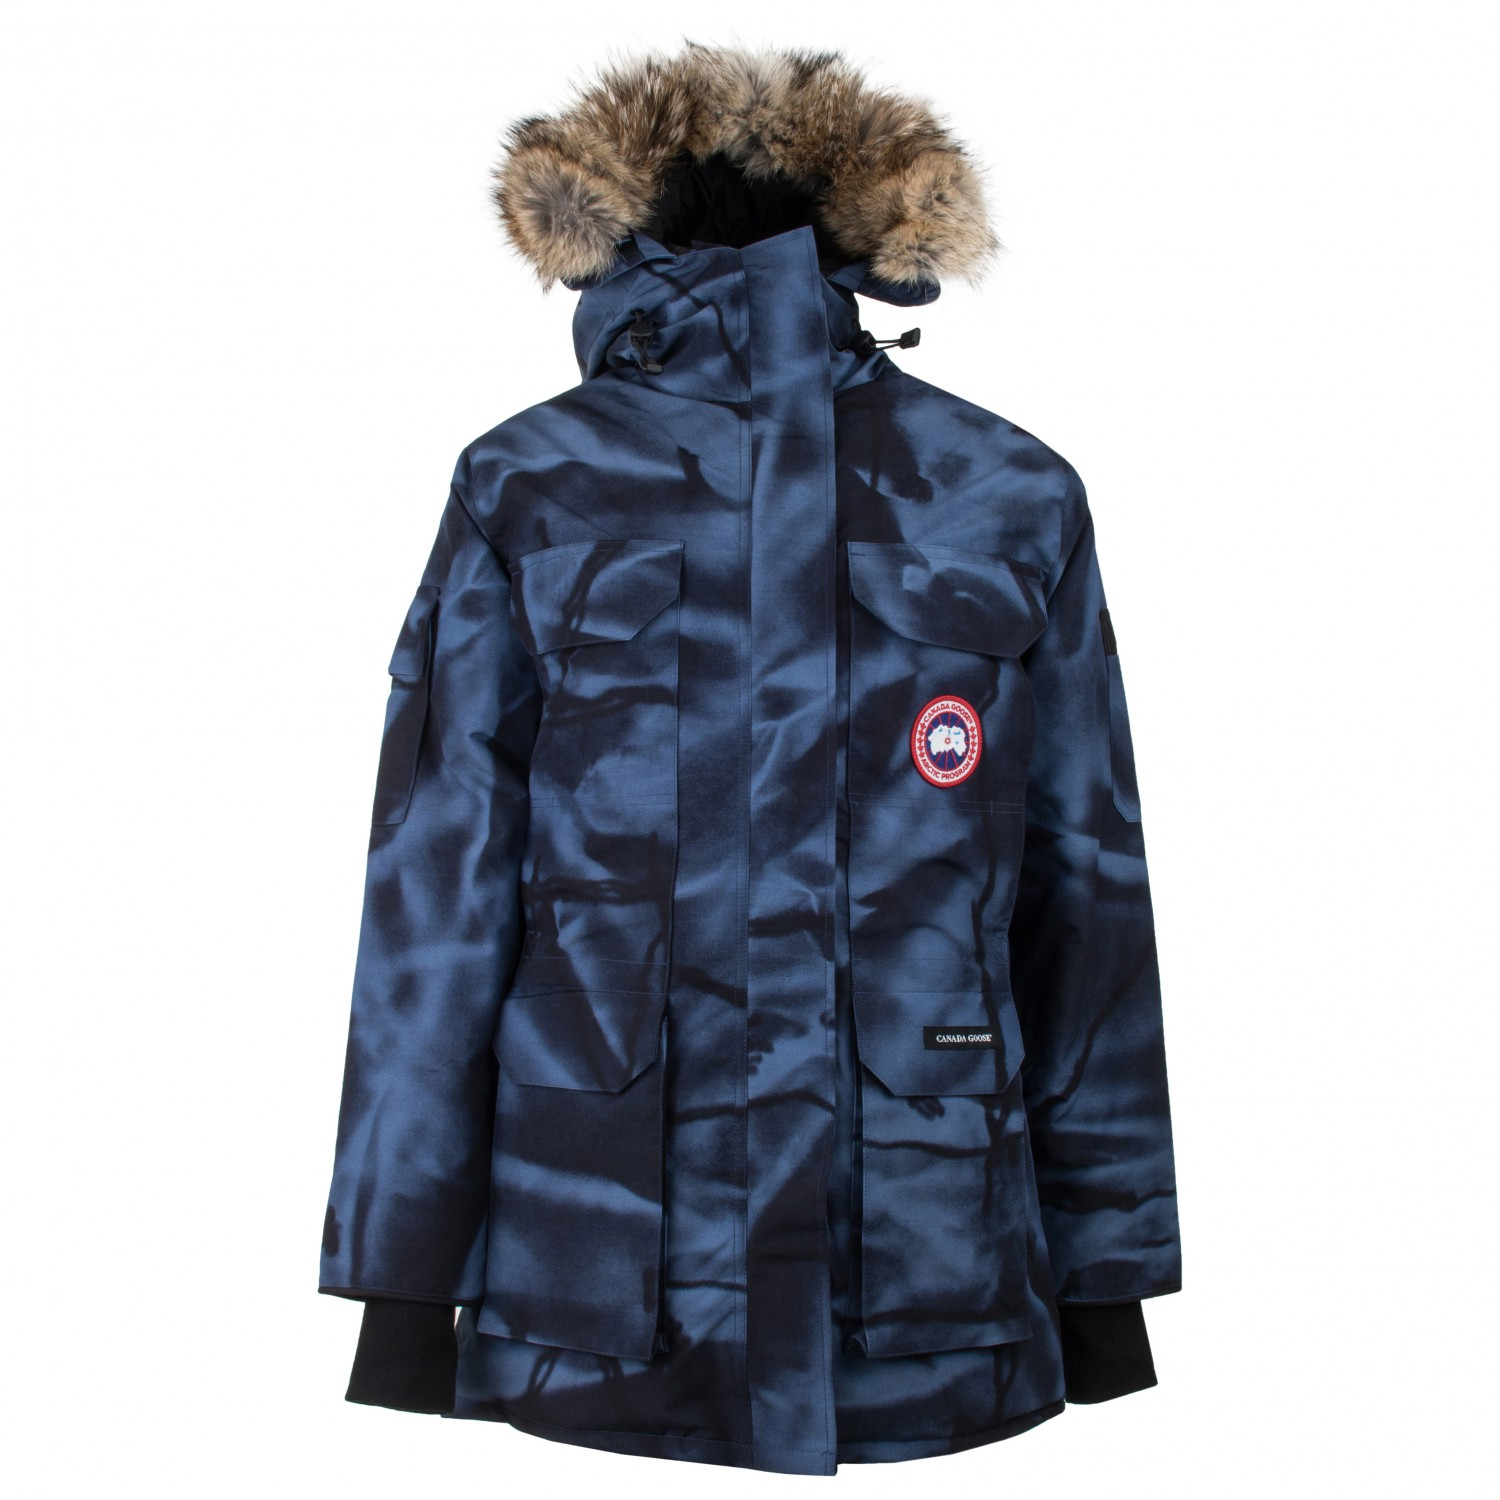 separation shoes 208a9 989c0 Canada Goose - Women's Expedition Parka - Giacca invernale - Black | XXS